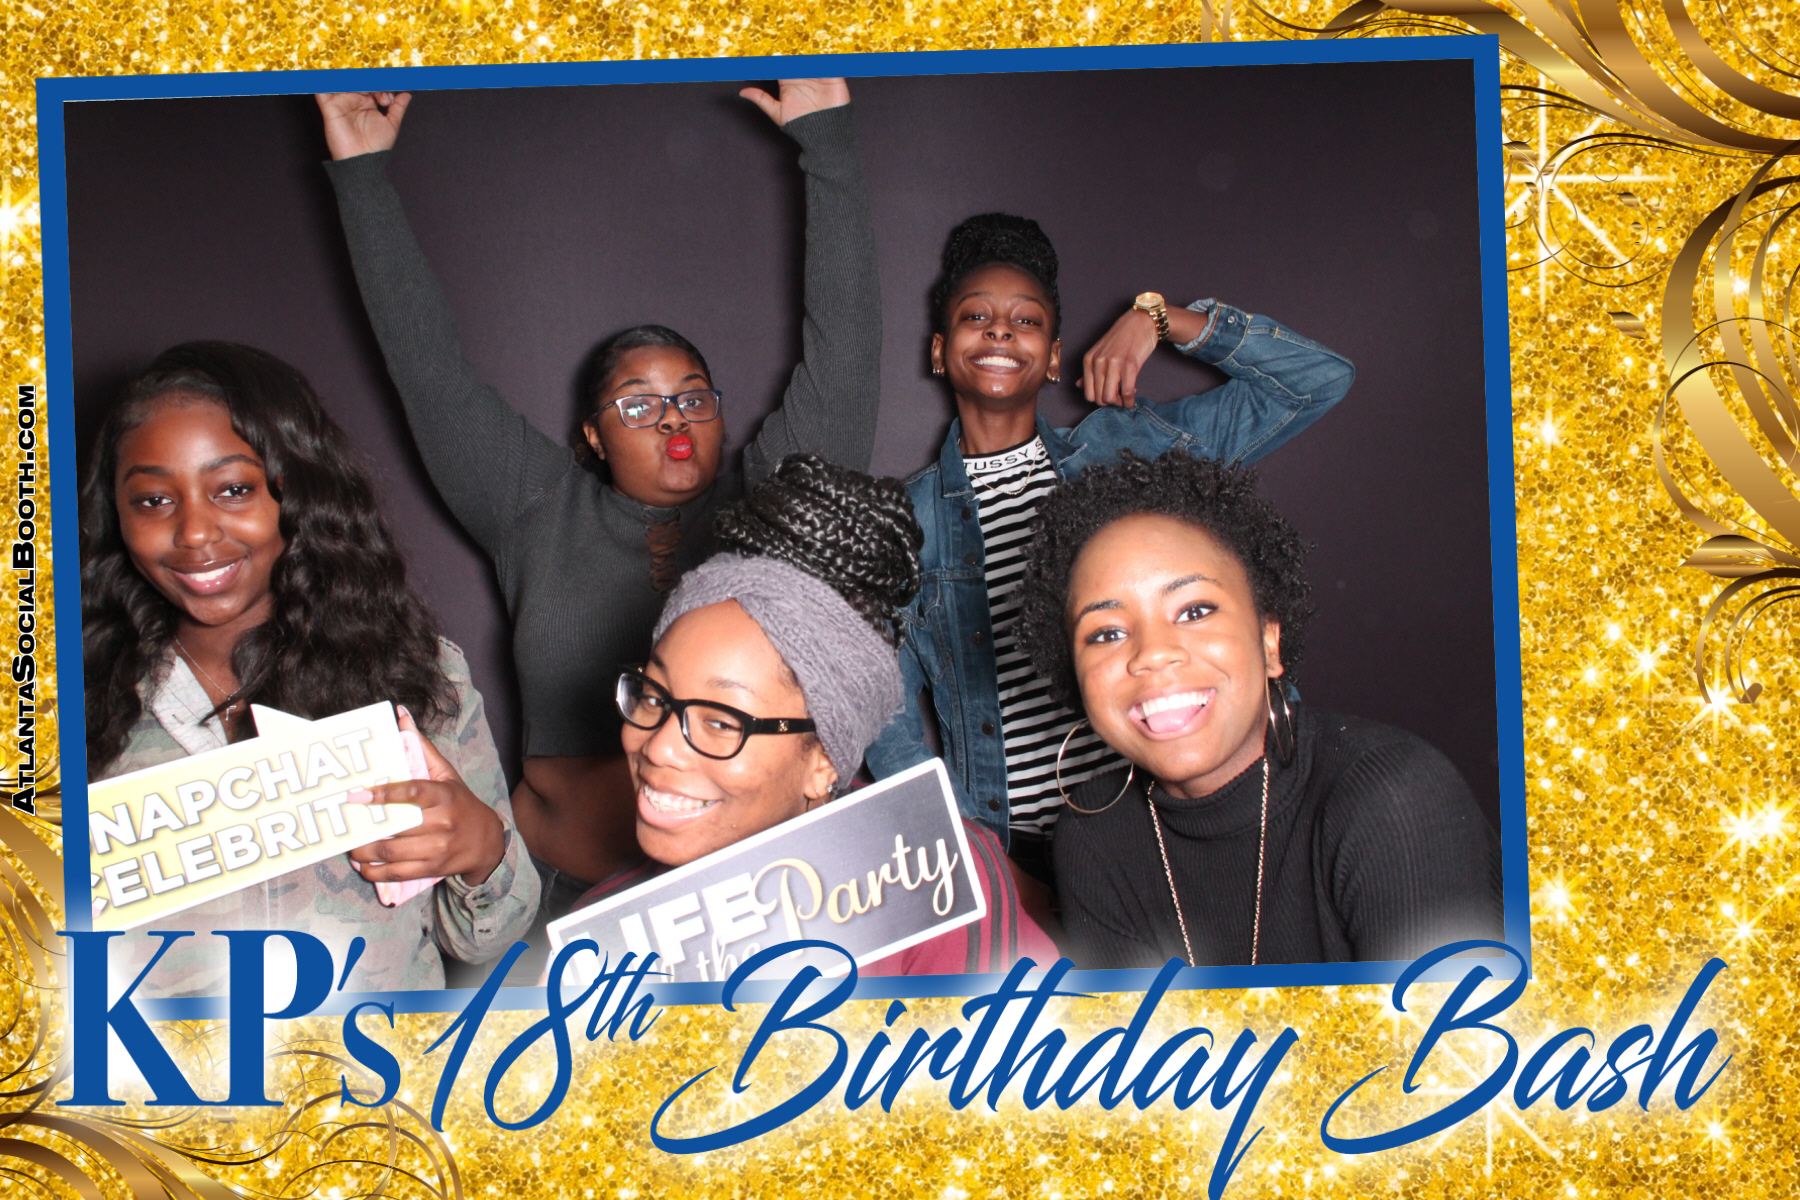 KPs 18th Birthday Bash